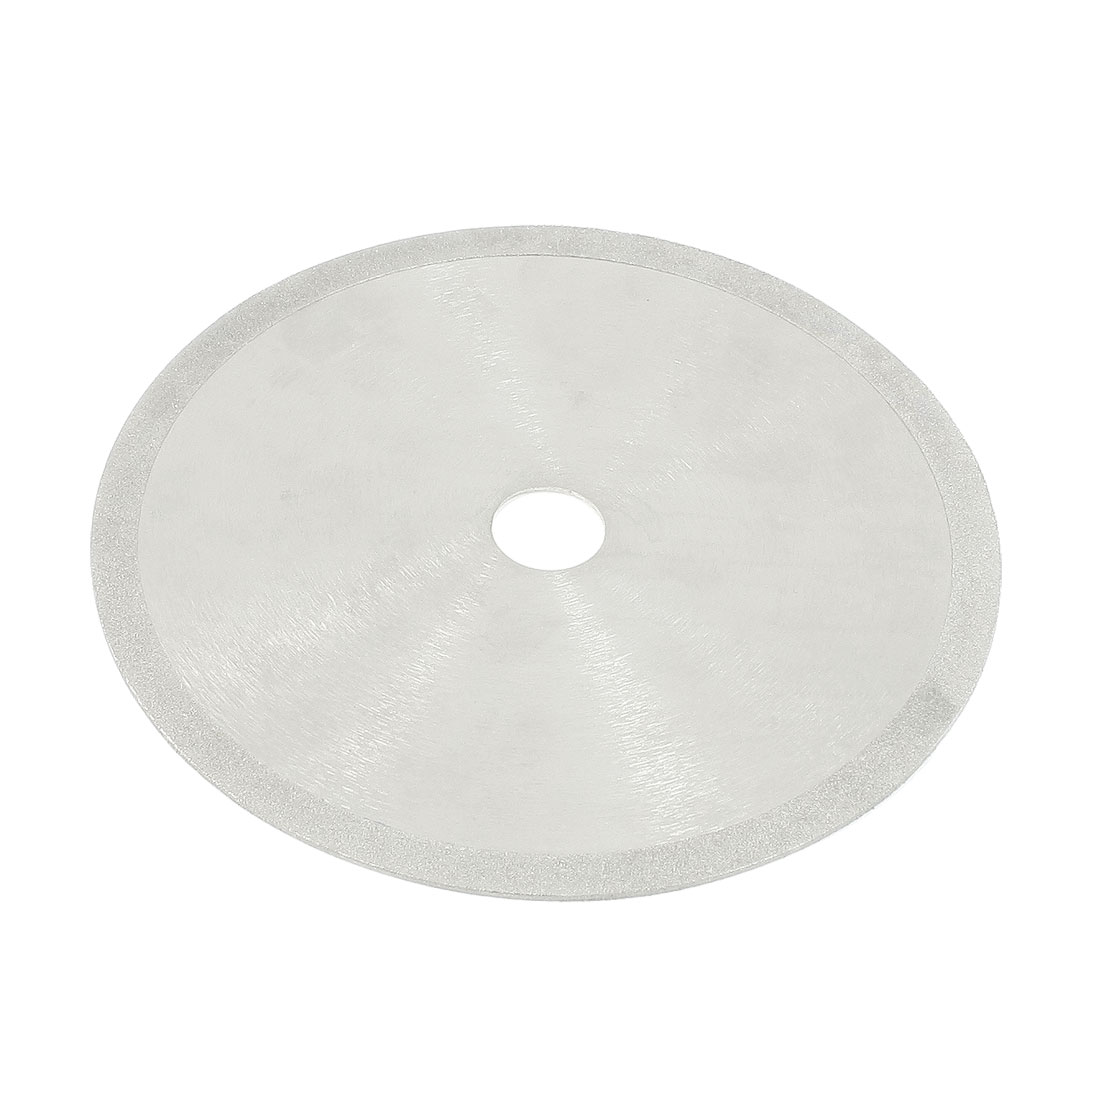 180mm OD 1.6mm Thickness Abrasives Cutting Discs Diamond Grinding Wheel